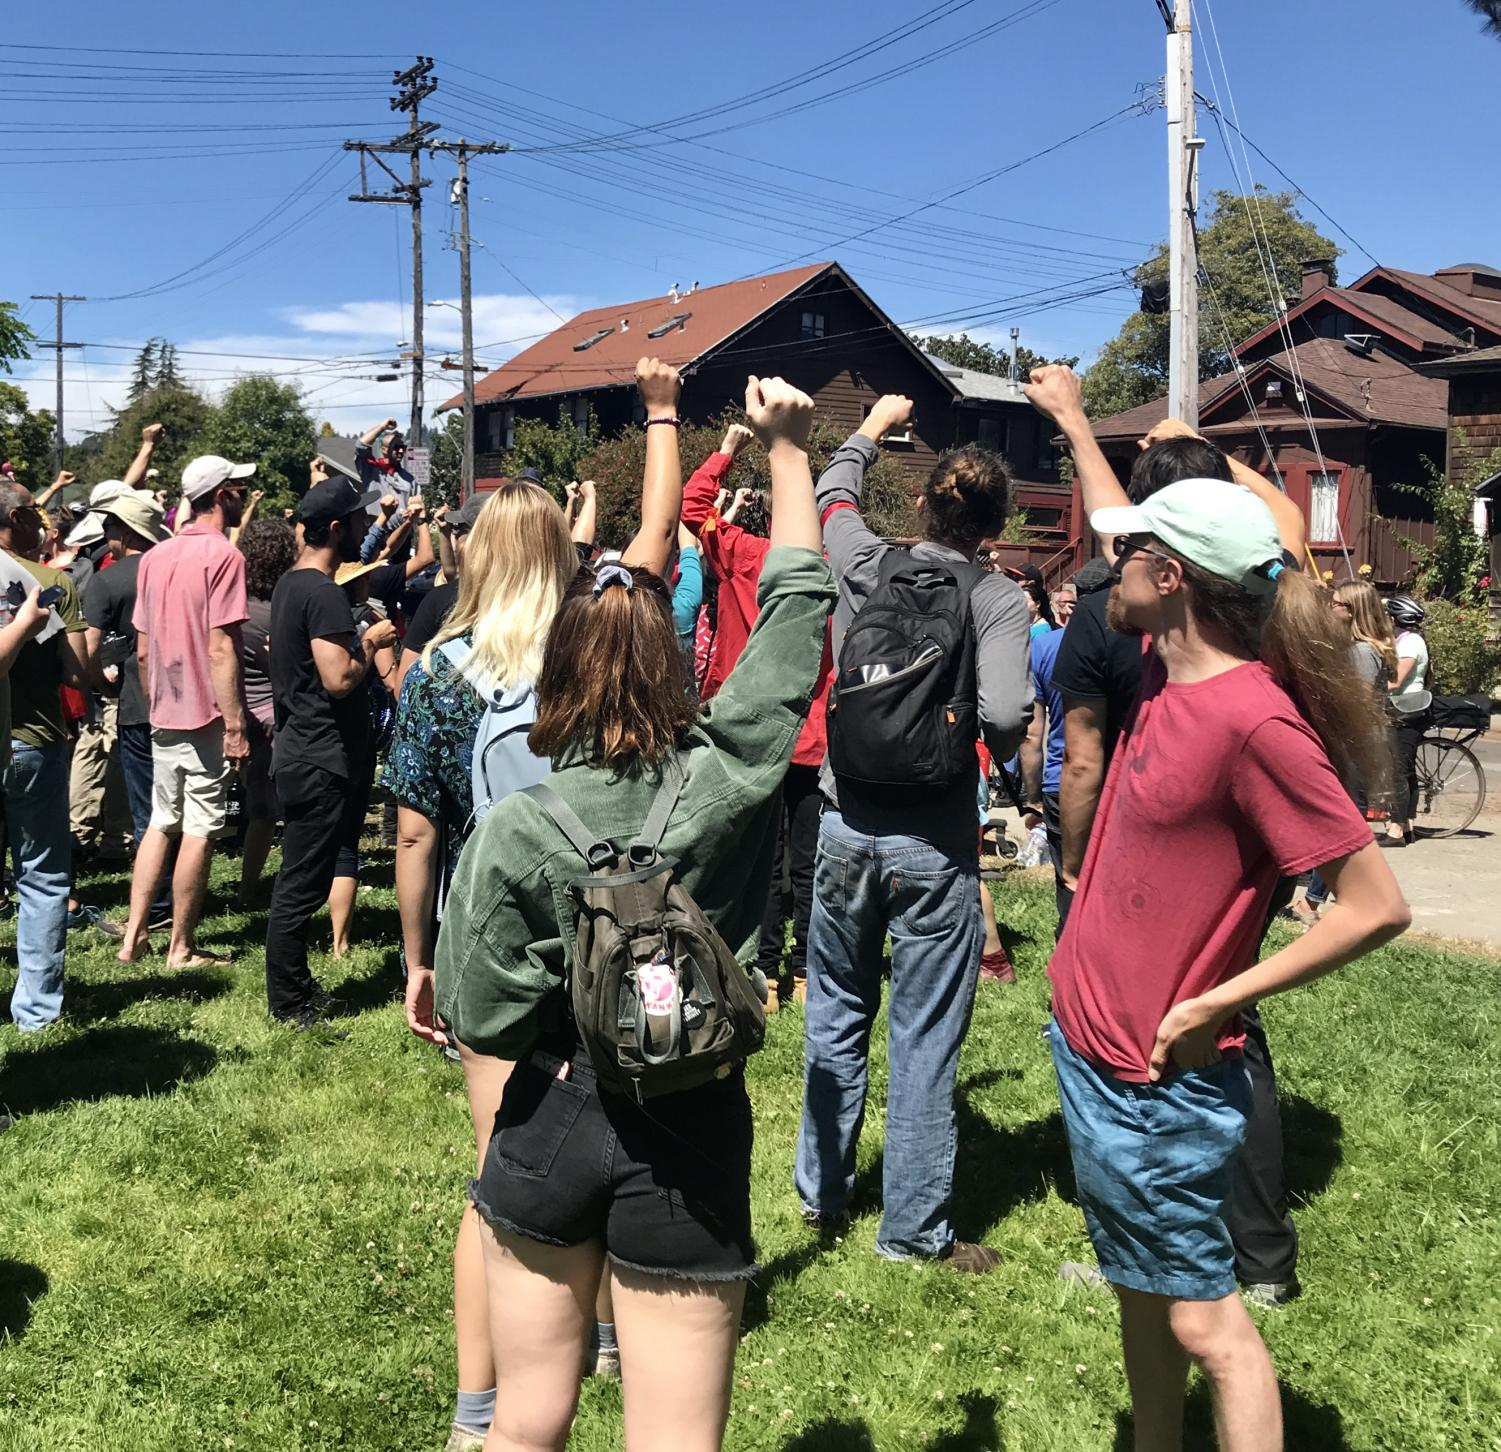 """Counter-protesters raise their fists at the """"No to Marxism in America 2"""" rally in Berkeley on Aug. 5. """"[The counter protest is] about making sure that working class people have solidarity,"""" said Khawer Khan, one of the counter-protesters."""